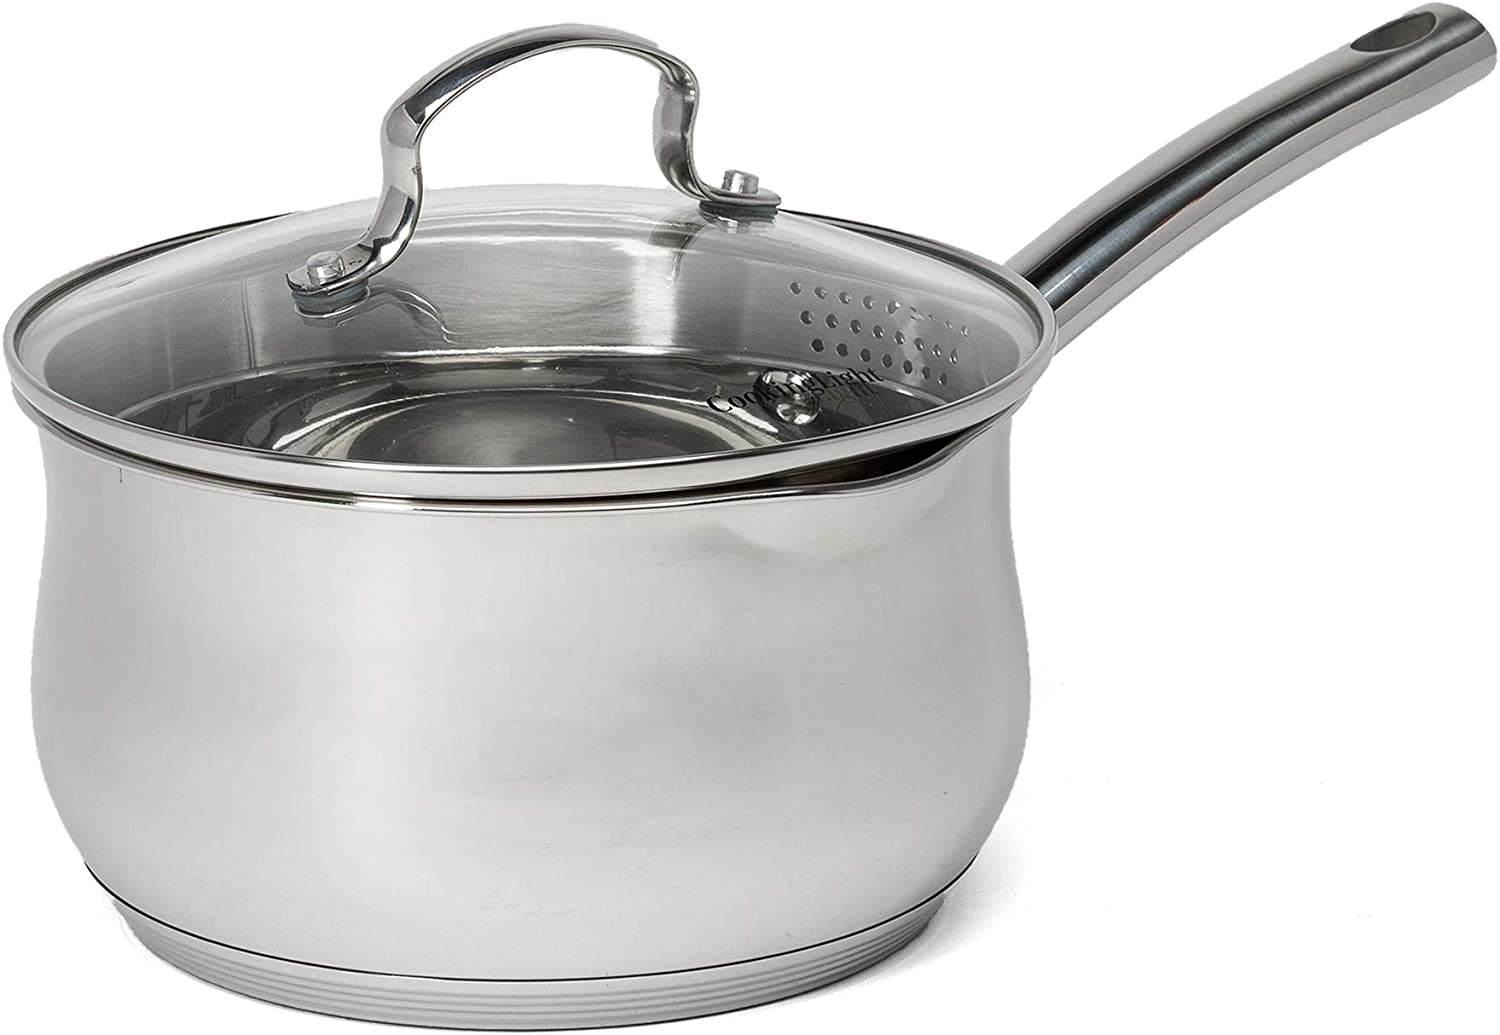 Cooking Light Stainless Steel Saucepan, Classic Belly Shape Cookware, Dishwasher and Oven Safe Pots and Pans, 3 Quart